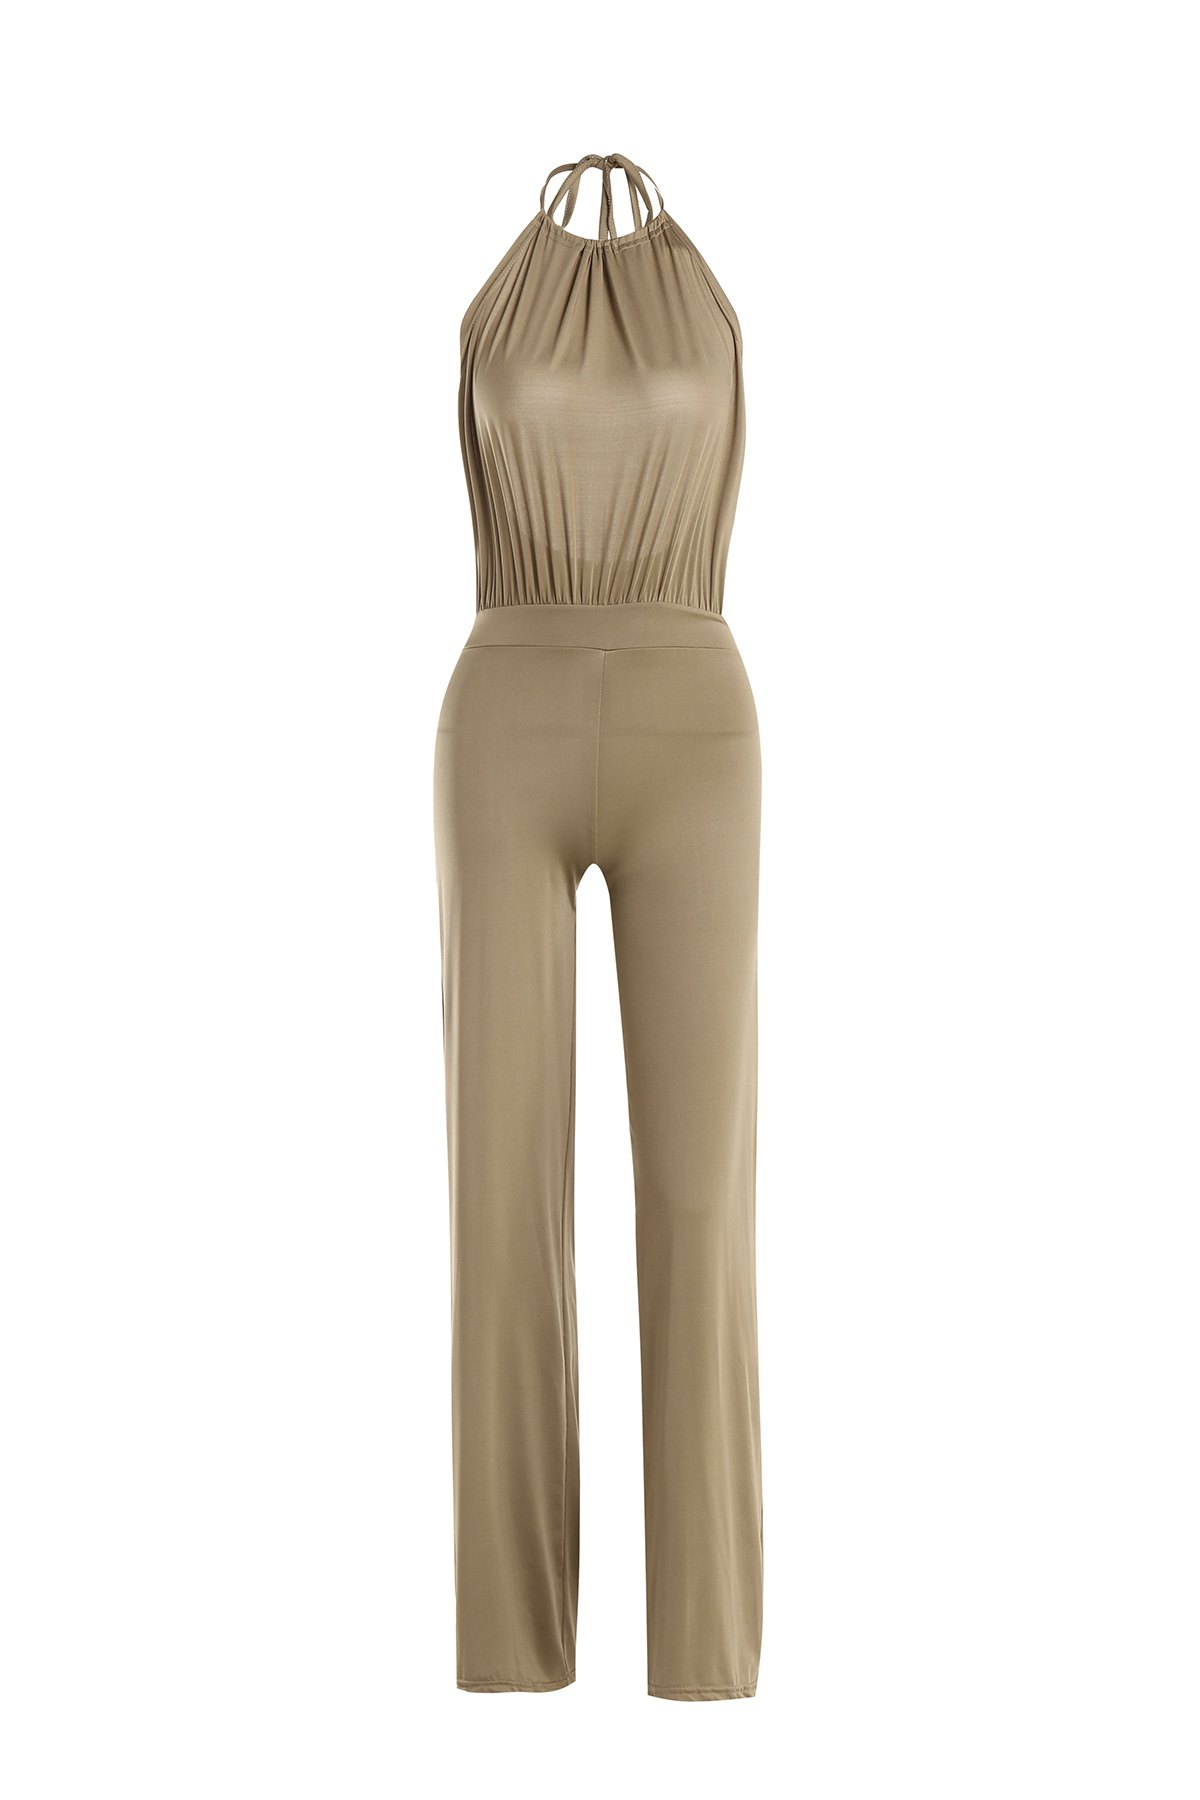 Unique Sexy Round Collar Sleeveless Backless Solid Color Women's Jumpsuit